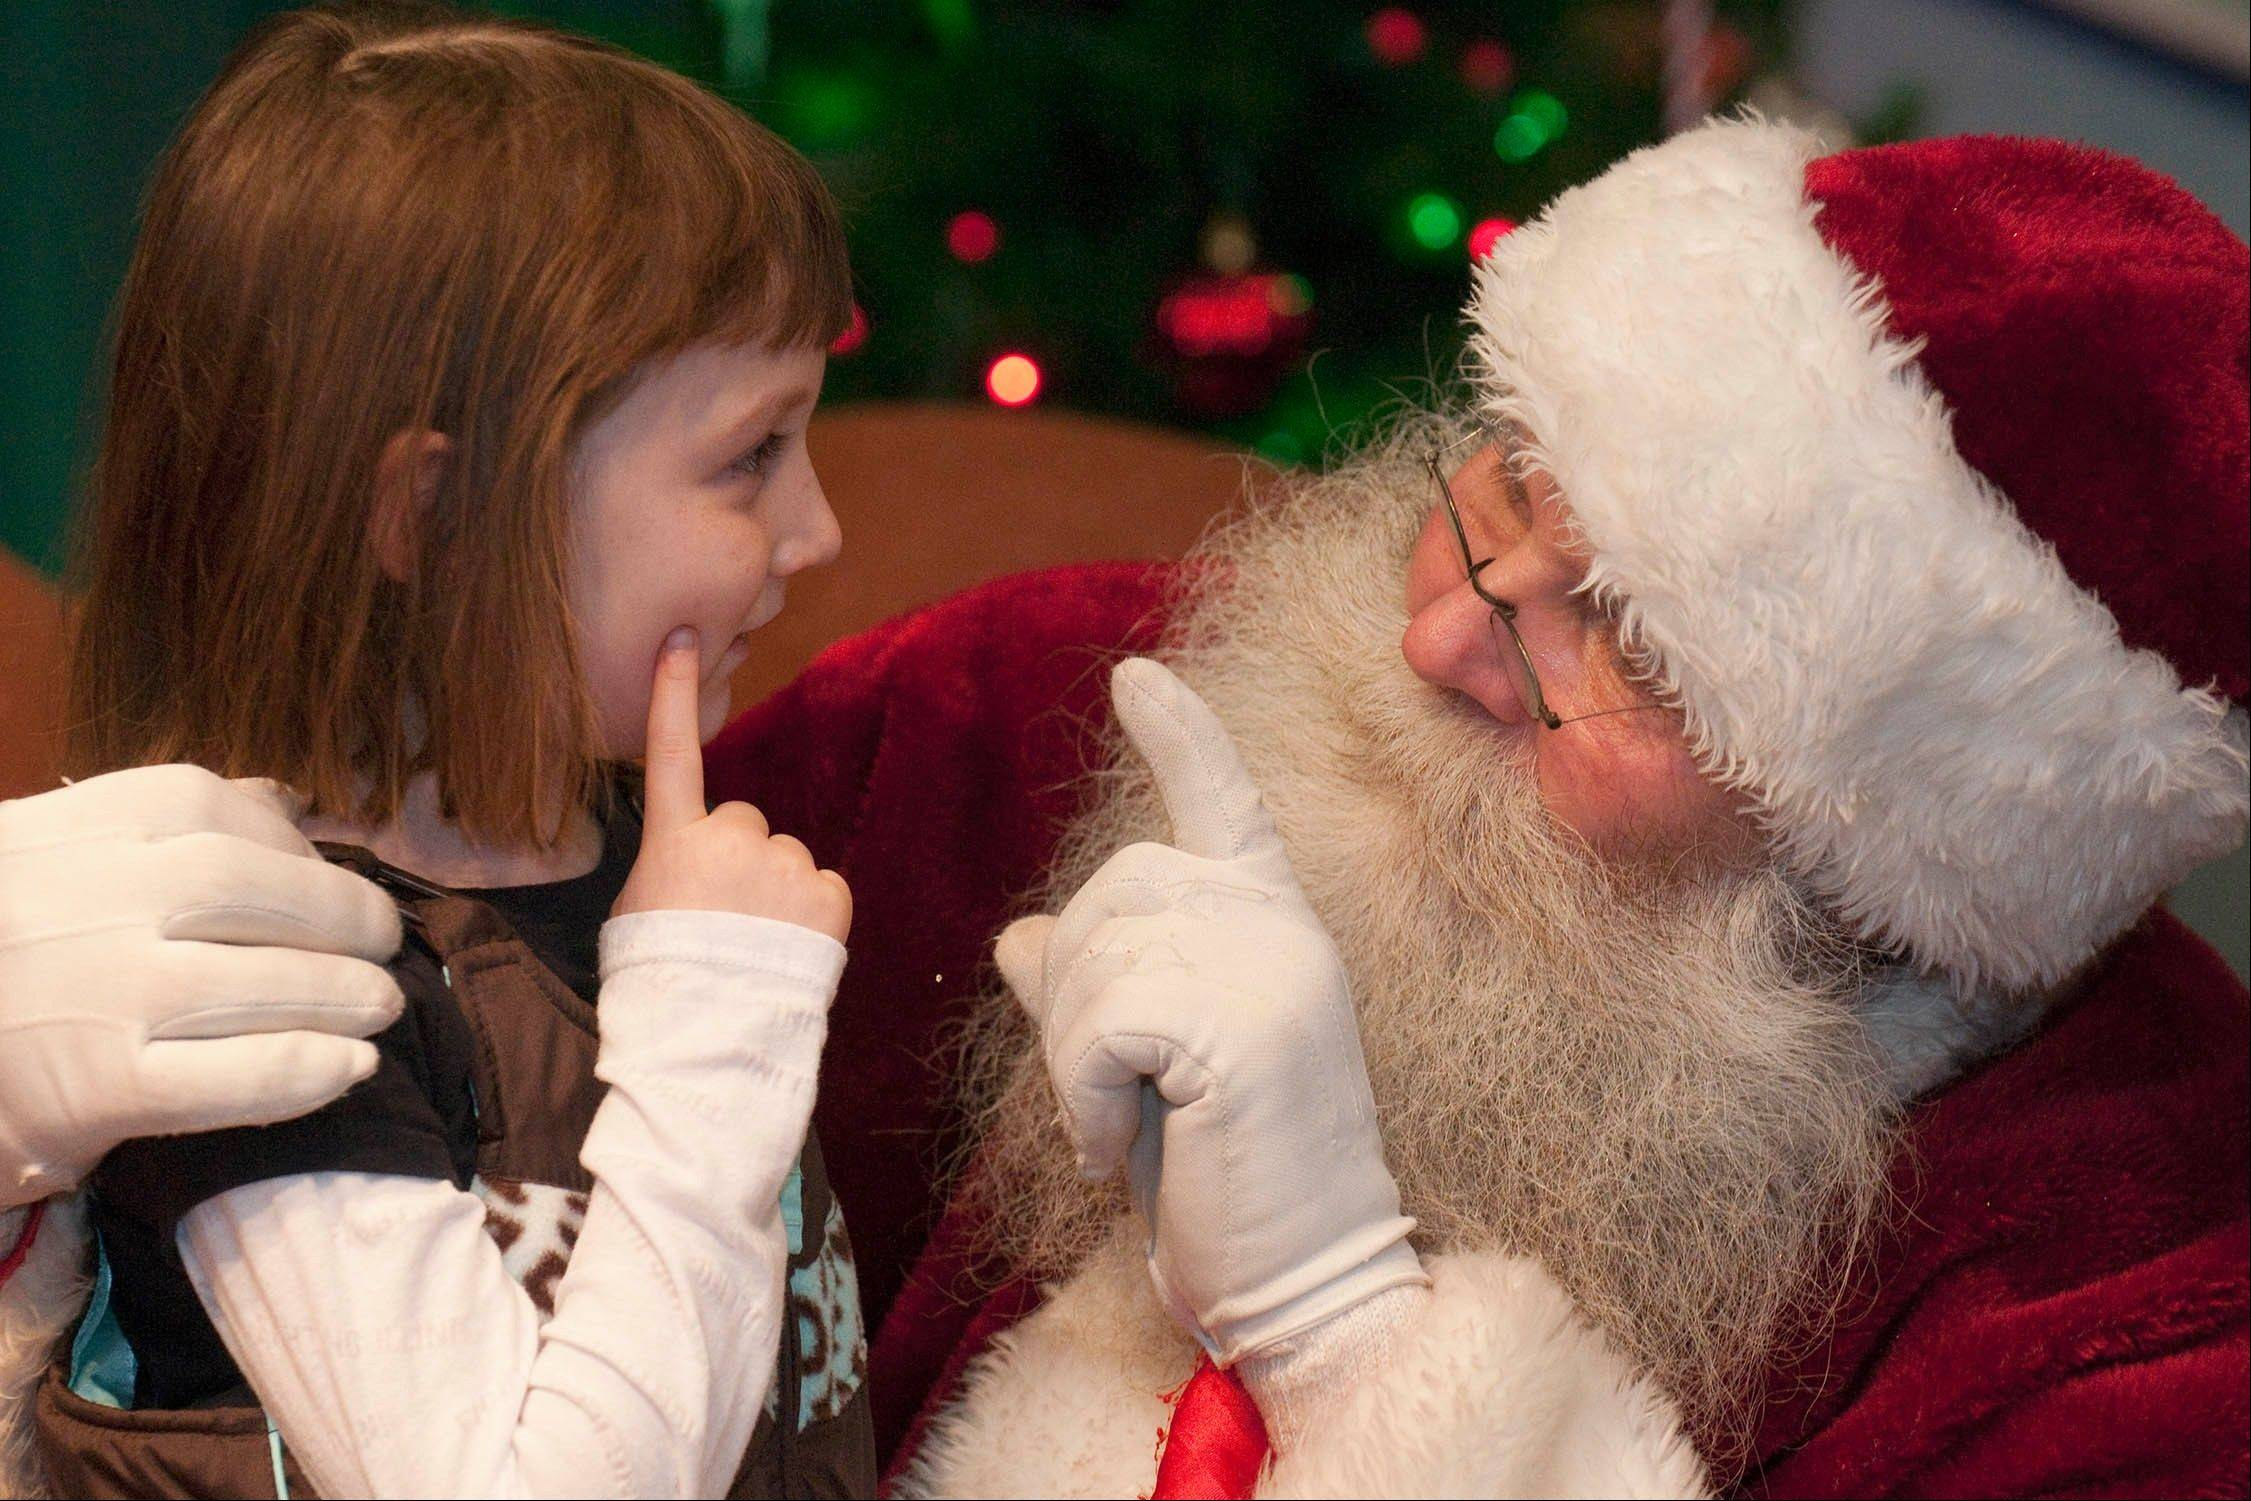 Youngsters can come face-to-face with Santa Claus himself at the annual Holiday Magic celebration at Brookfield Zoo.